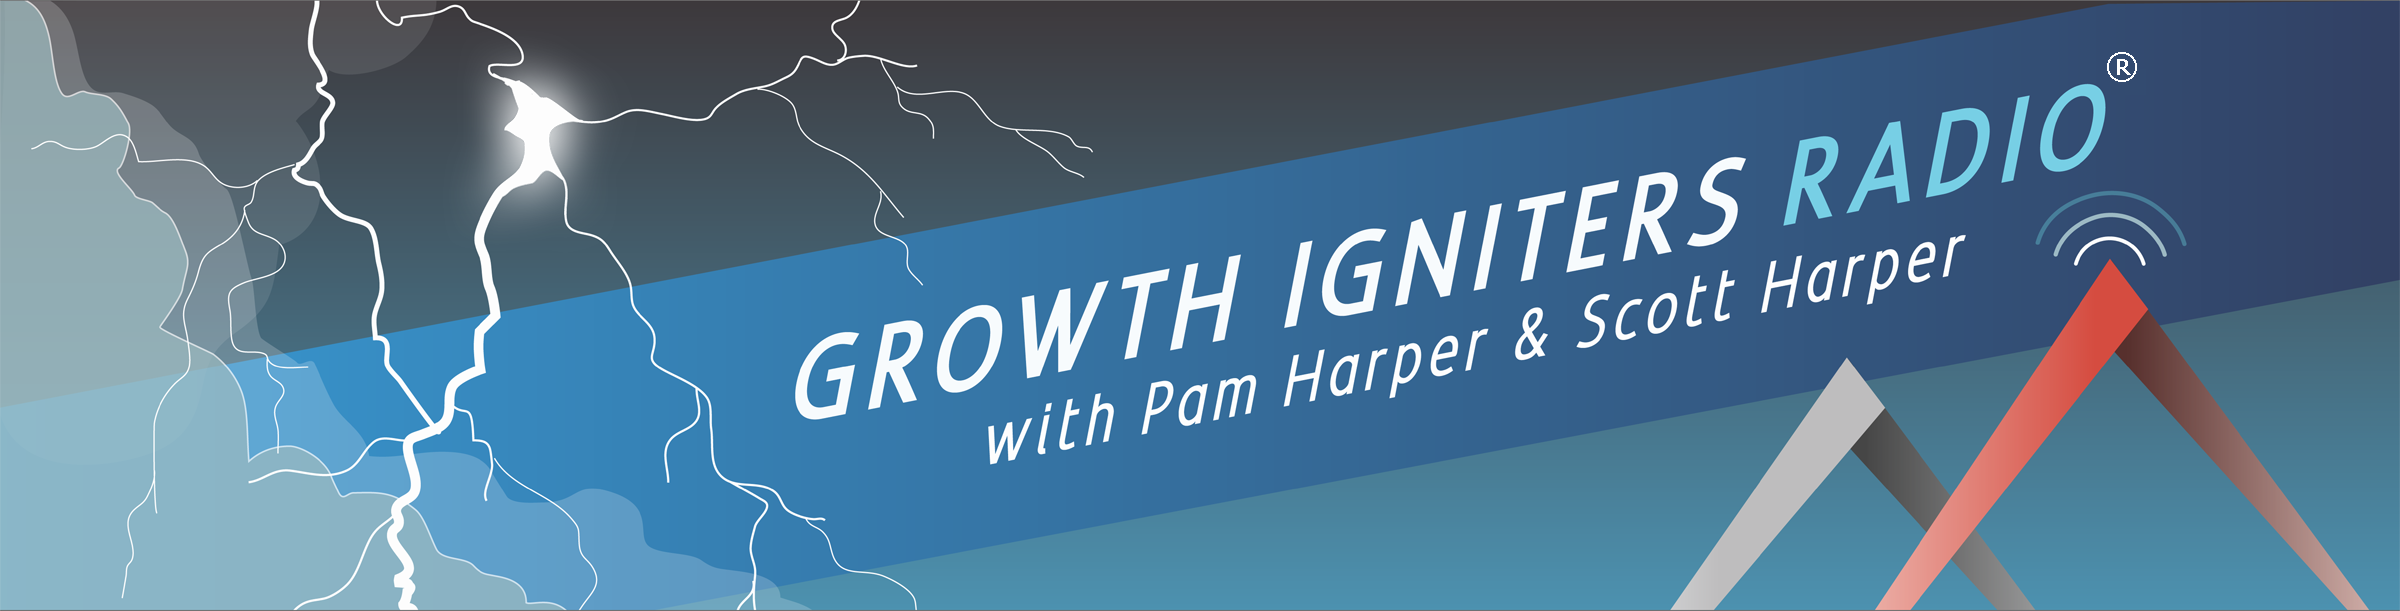 growth igniters radio banner-thicker-2